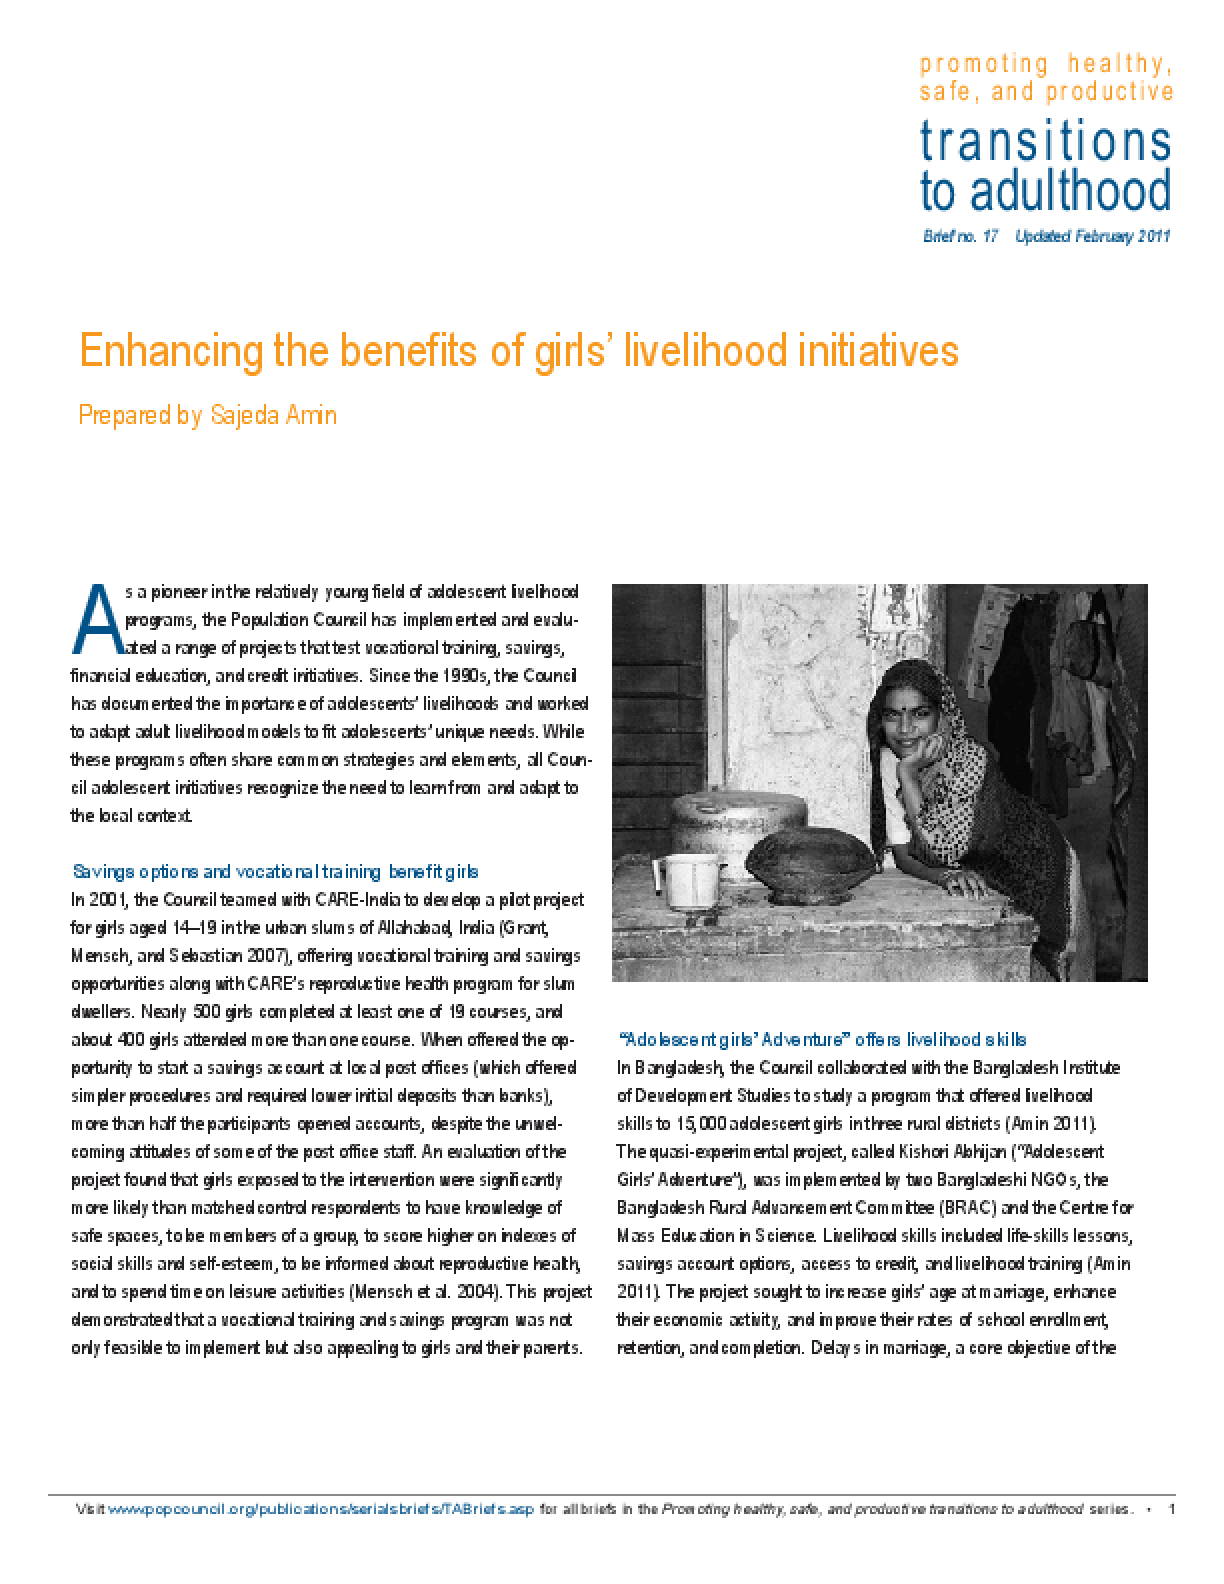 Enhancing the Benefits of Girls' Livelihood Initiatives. Promoting Healthy, Safe, and Productive Transitions to Adulthood